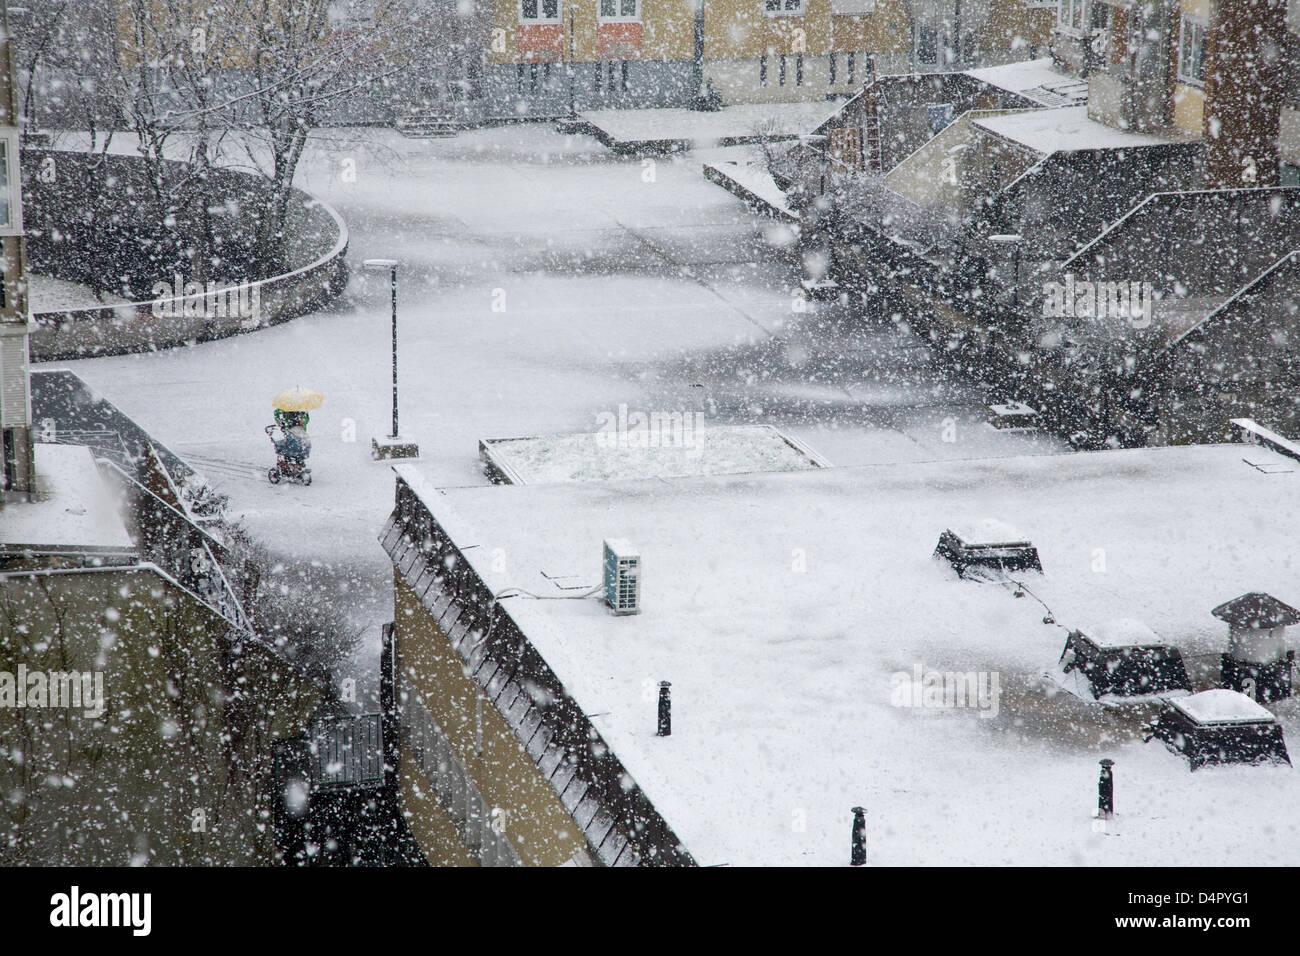 On 18th March 2013, just when Spring should be showing its face, another heavy snowfall comes in a suburb of Ljubljana, - Stock Image